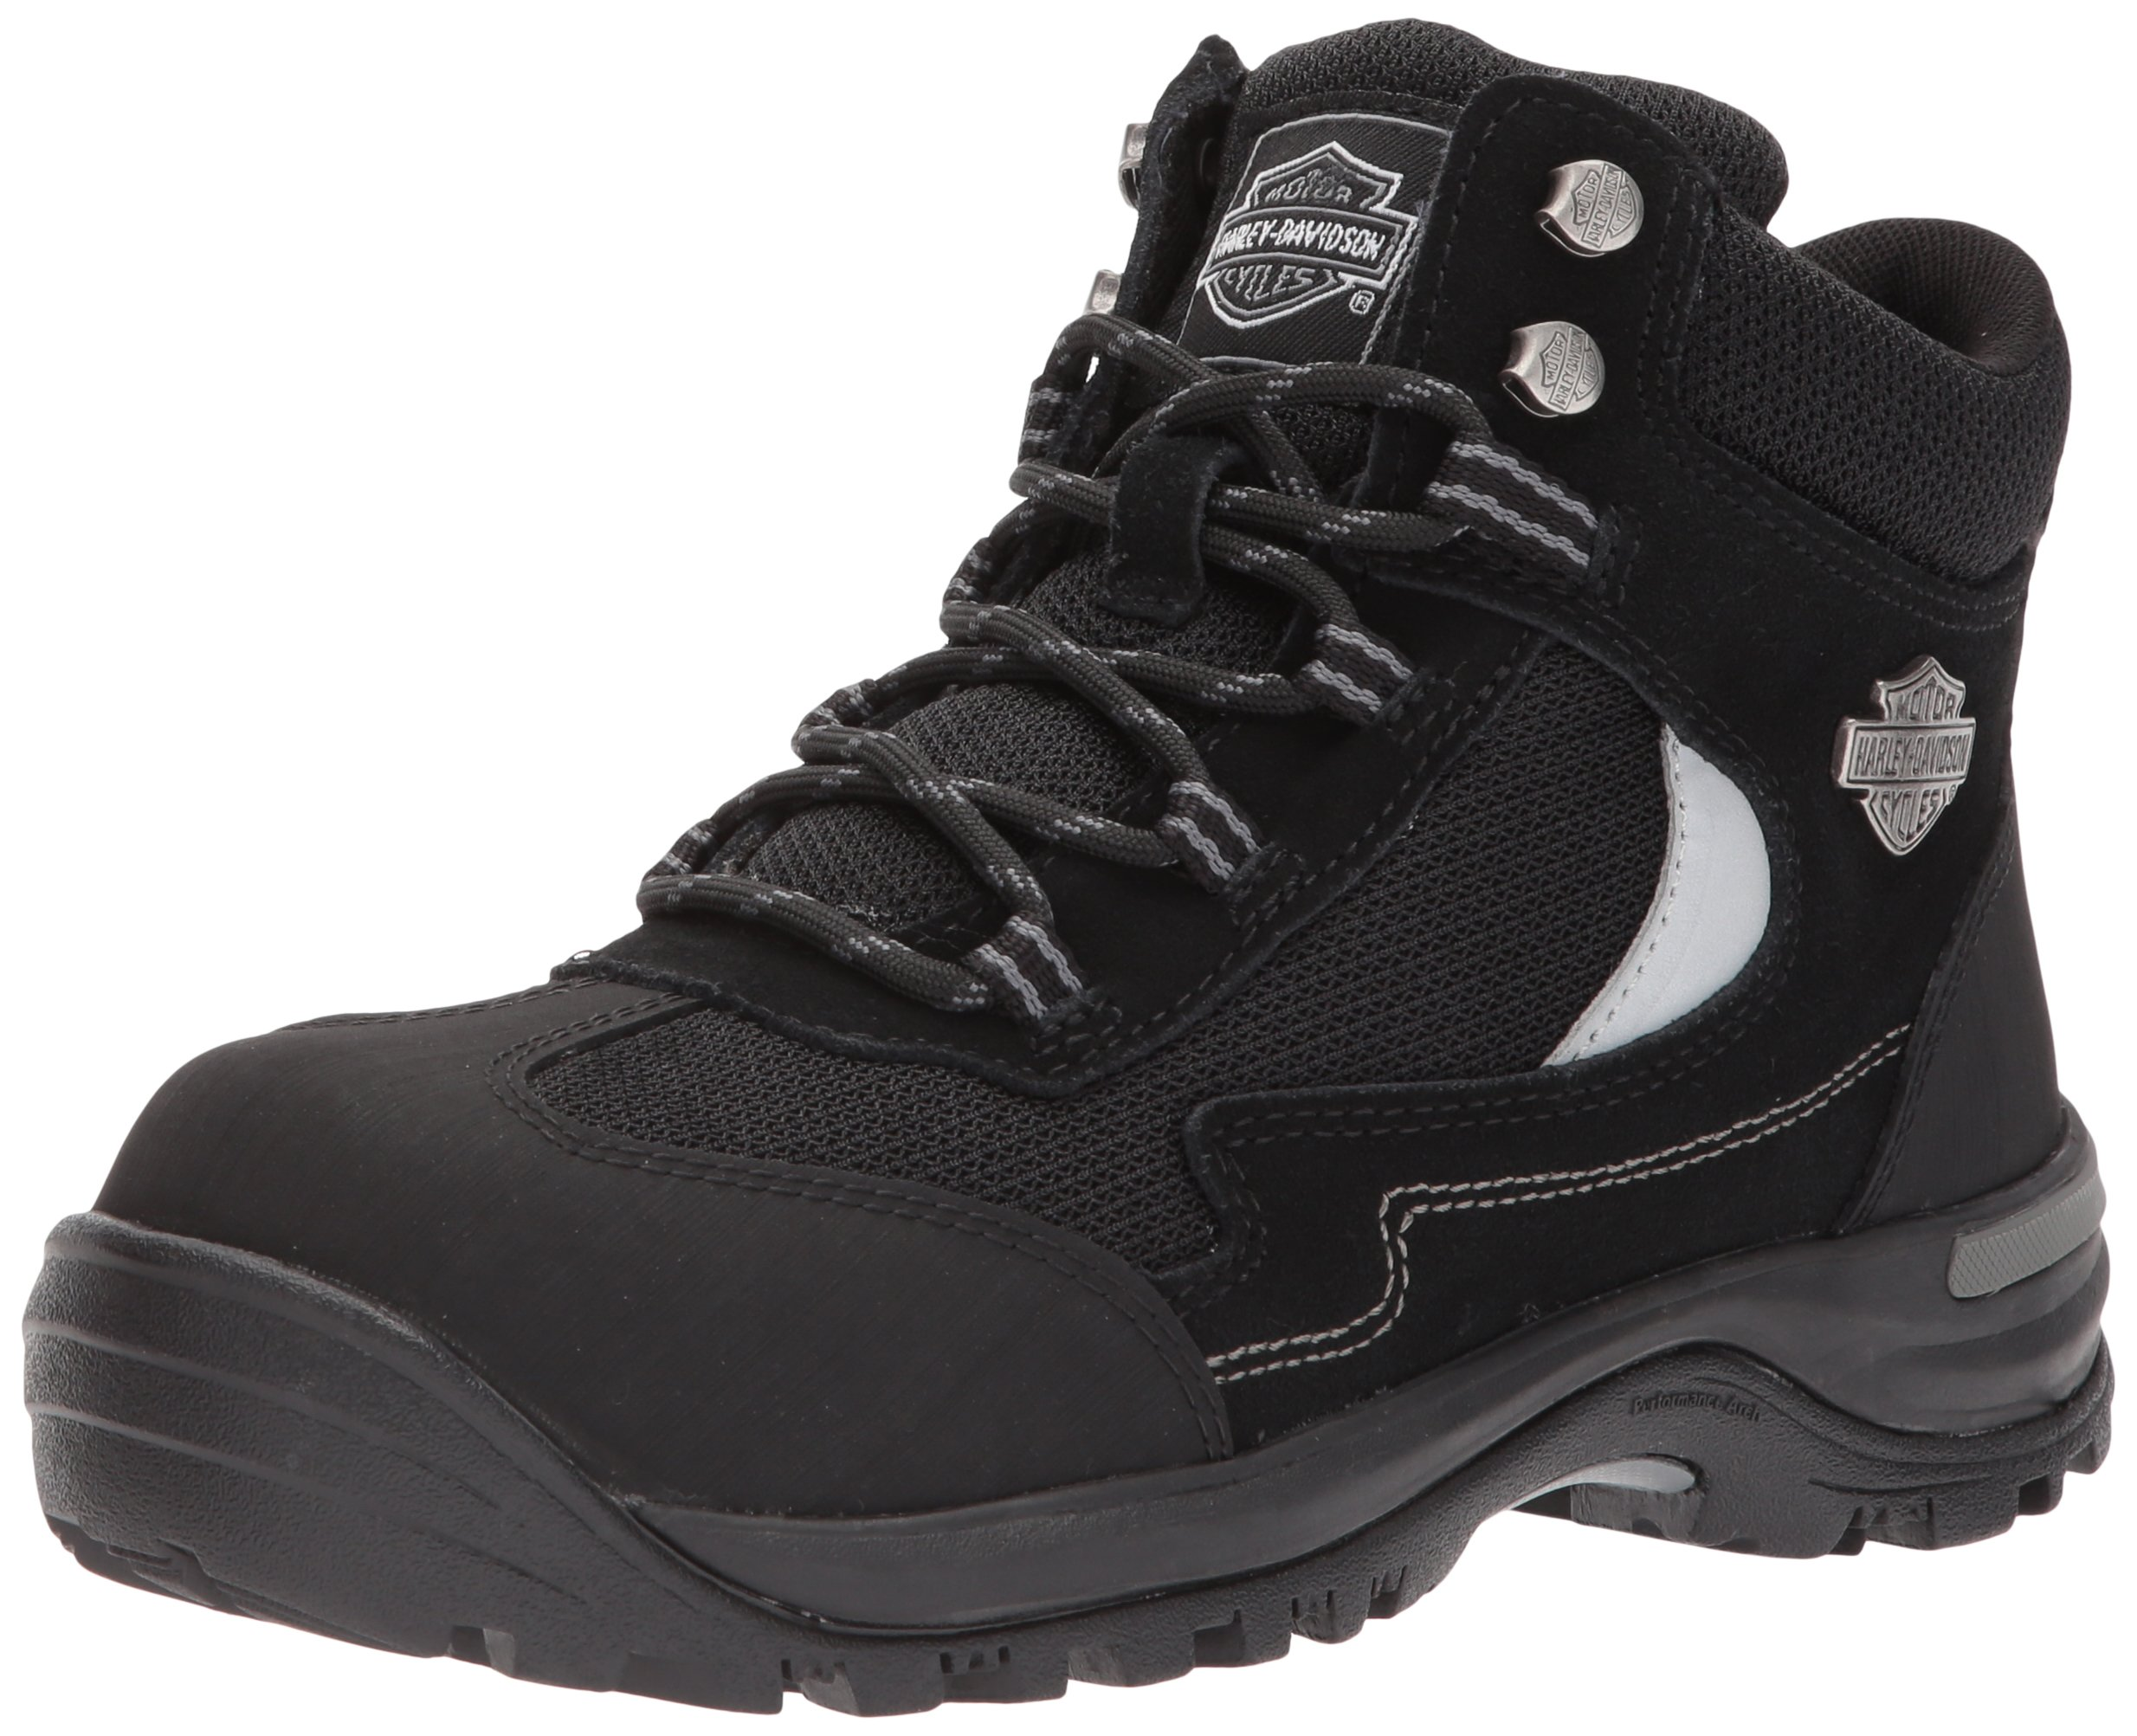 Harley-Davidson Women's Waites CT Industrial Shoe, Black, 9 Medium US